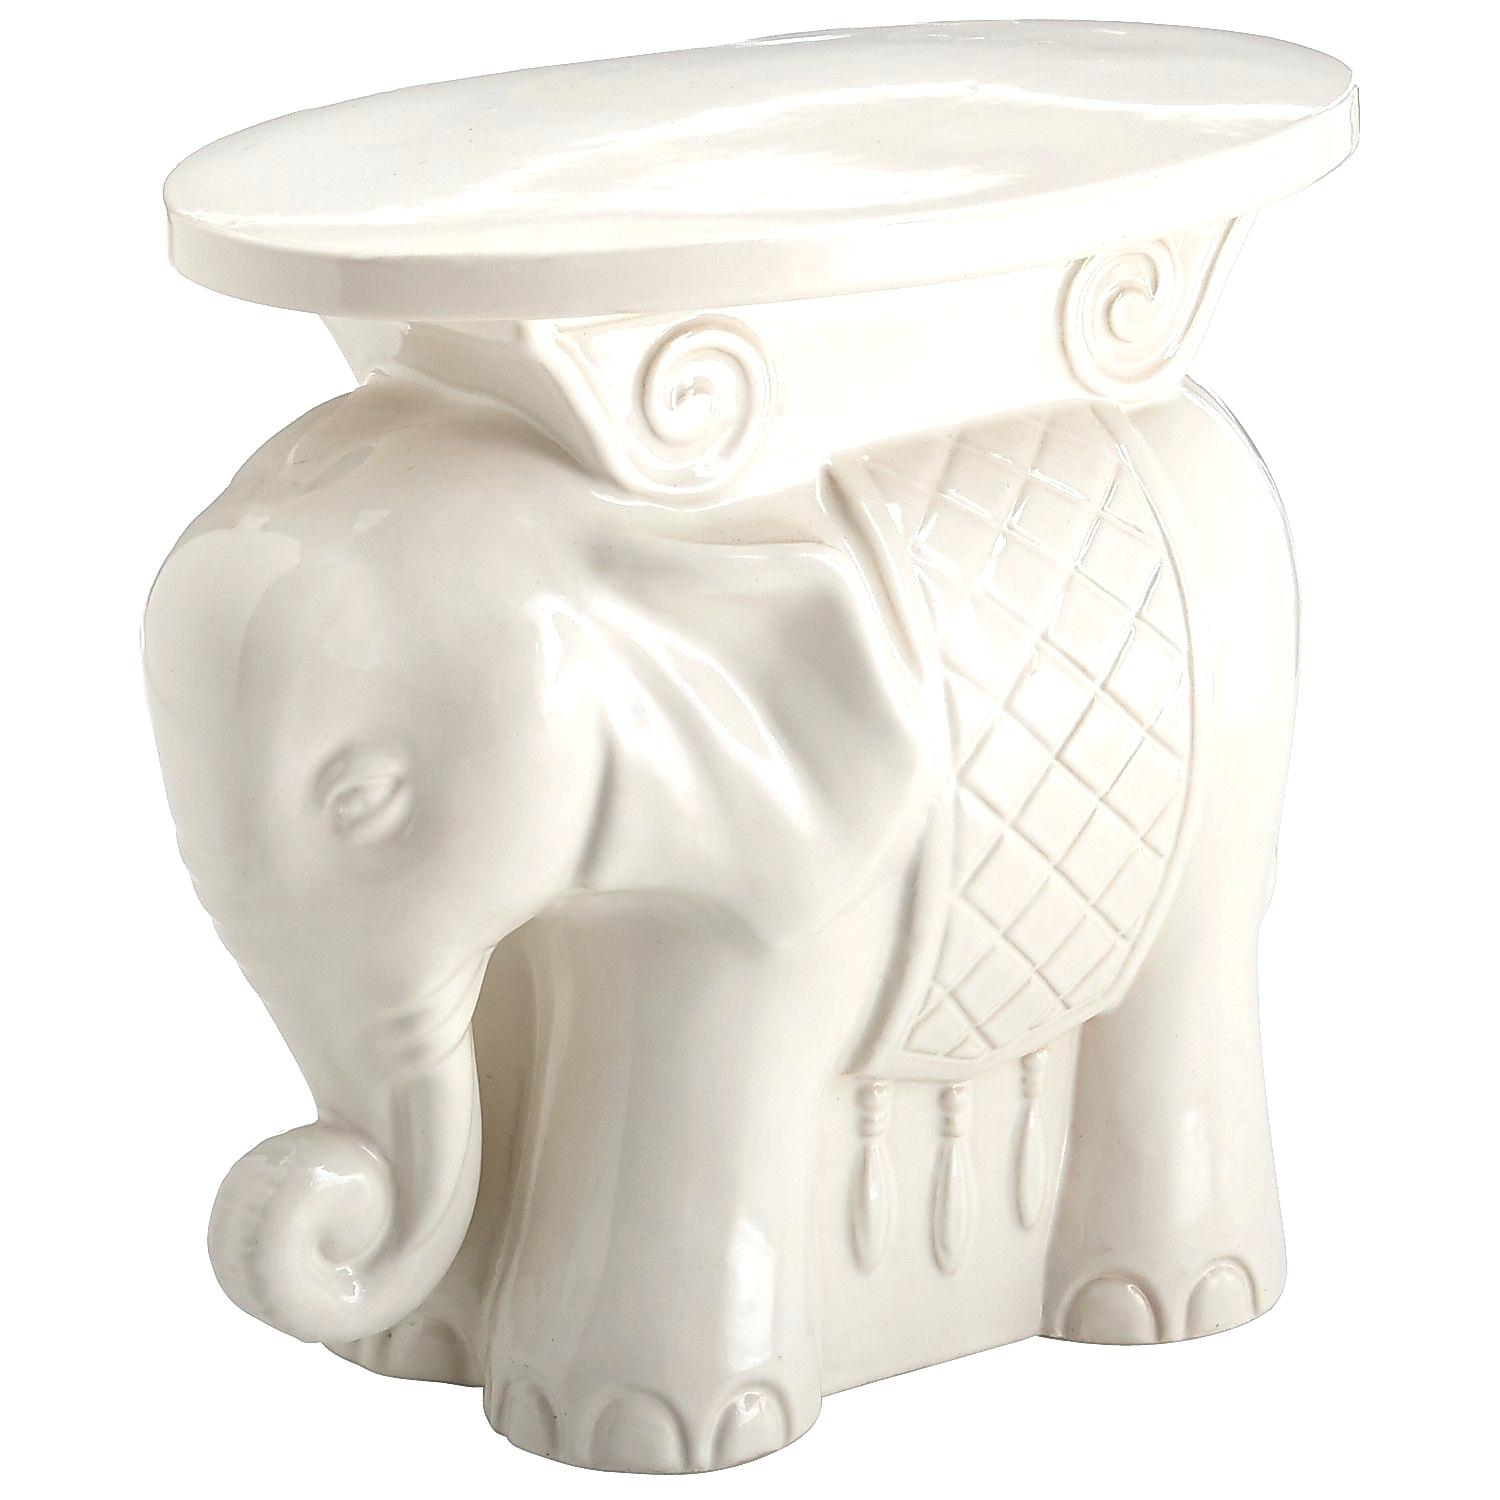 elephant tables pair carved hardwood style with vibe for accent loading table teal painted wood skinny couch inch round decorator bedside lights outdoor battery lamps folding end